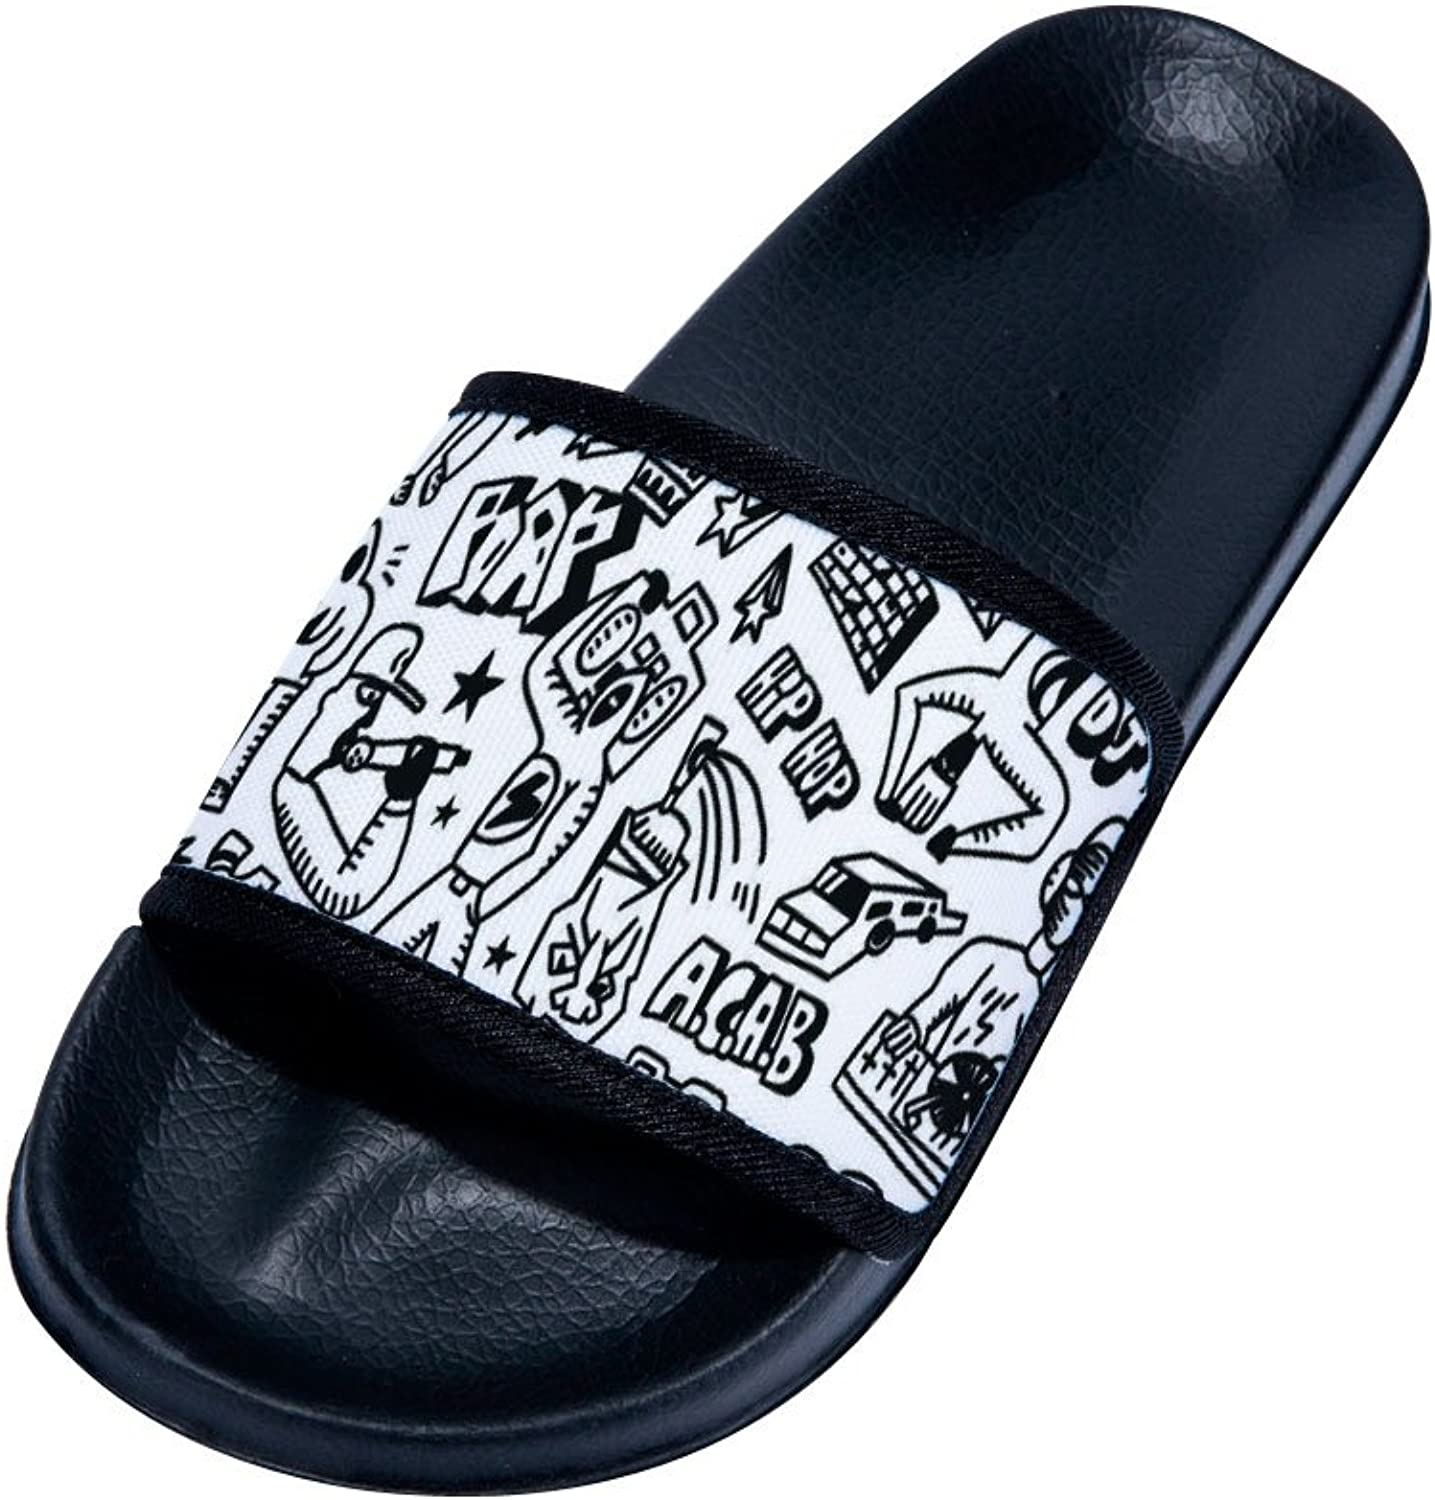 Buteri Doodle Graffiti Slippers Non-Slip Quick-Drying Slippers for Womens